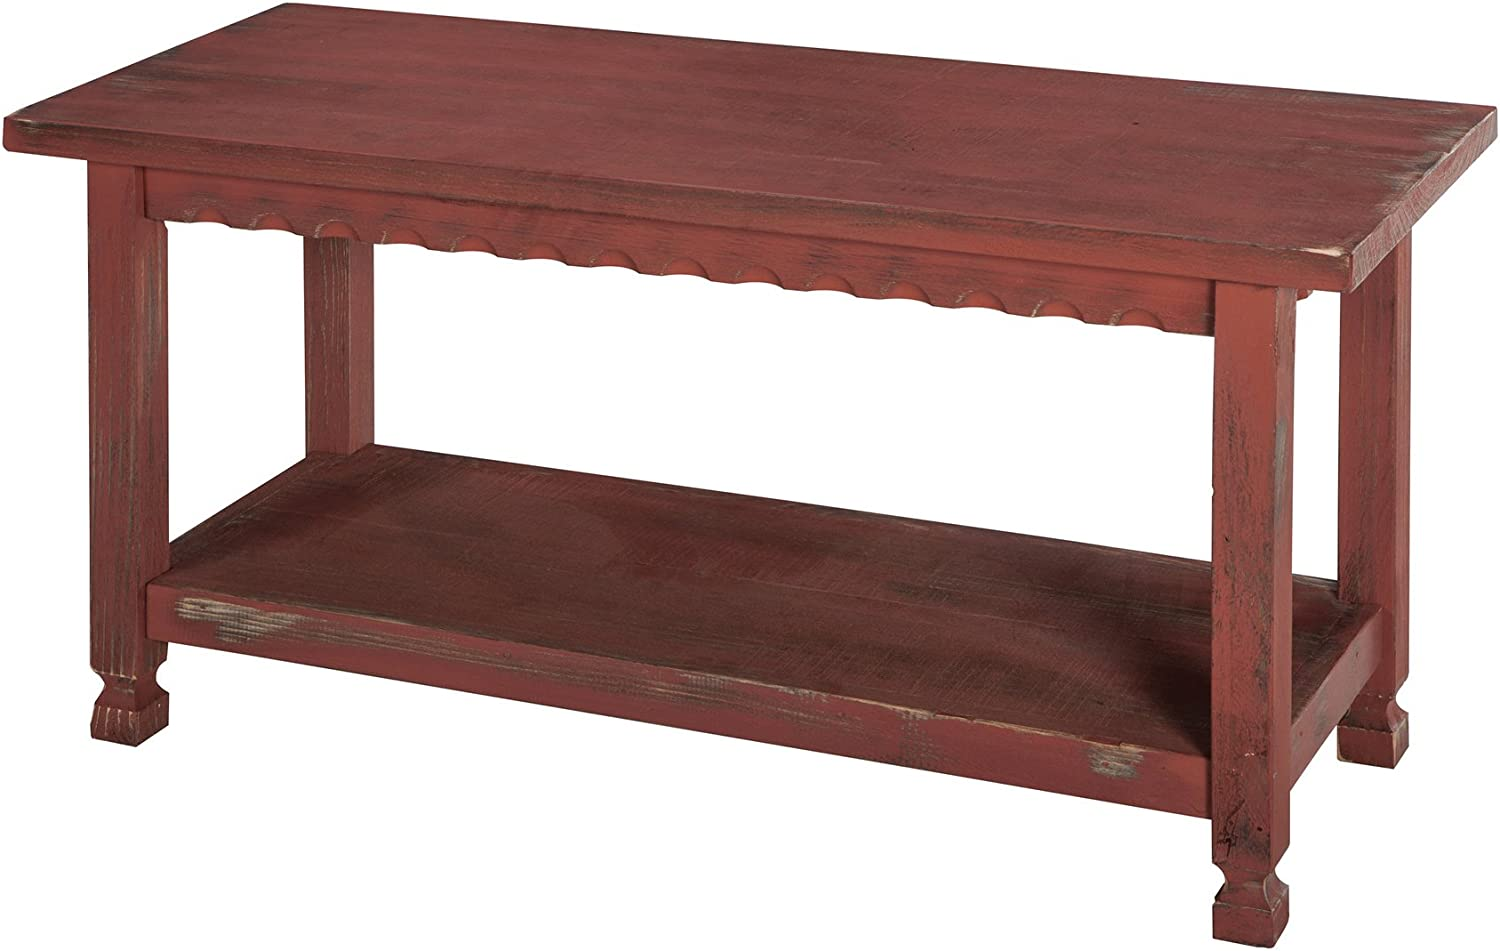 Rustic Cottage Bench with 1 Shelf, Red Antique